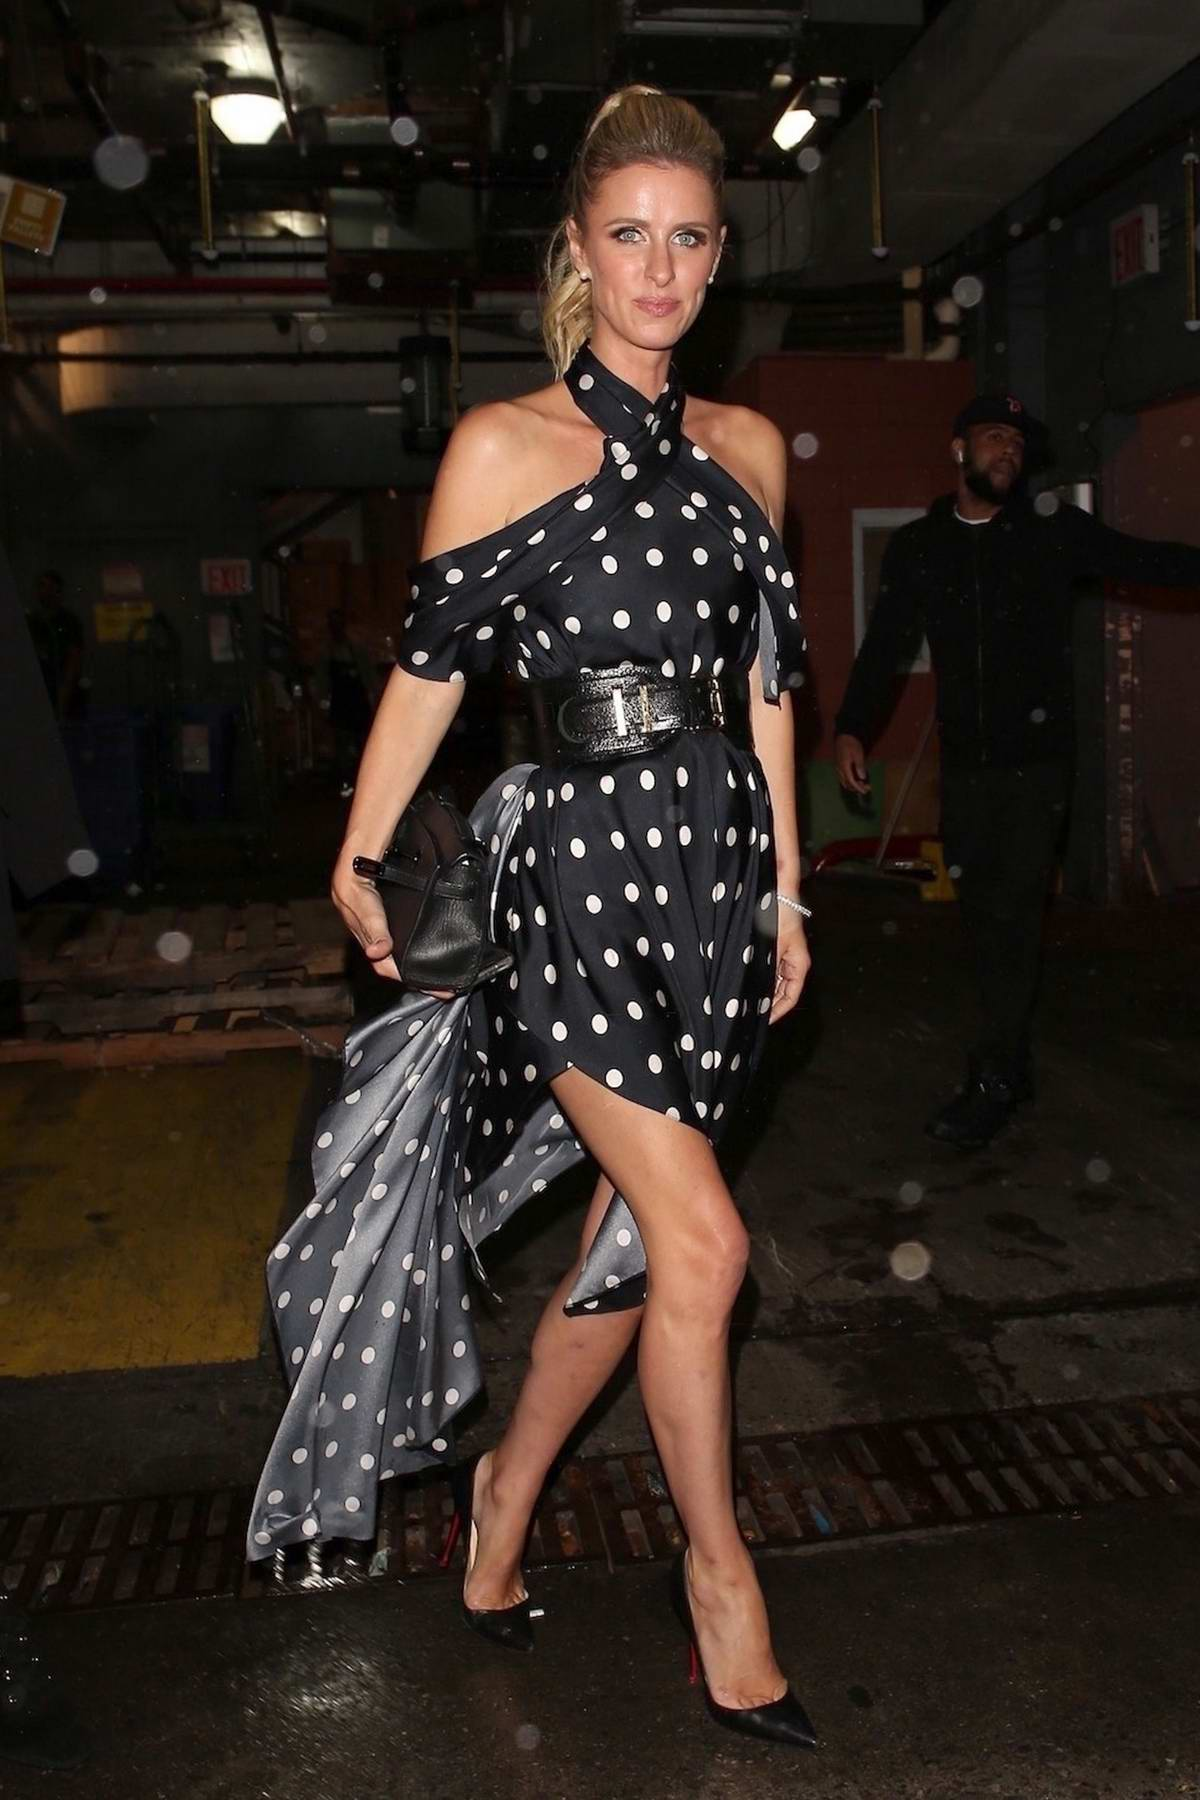 Nicky Hilton arrives at the Tommy Hilfiger bash during New York Fashion Week in New York City